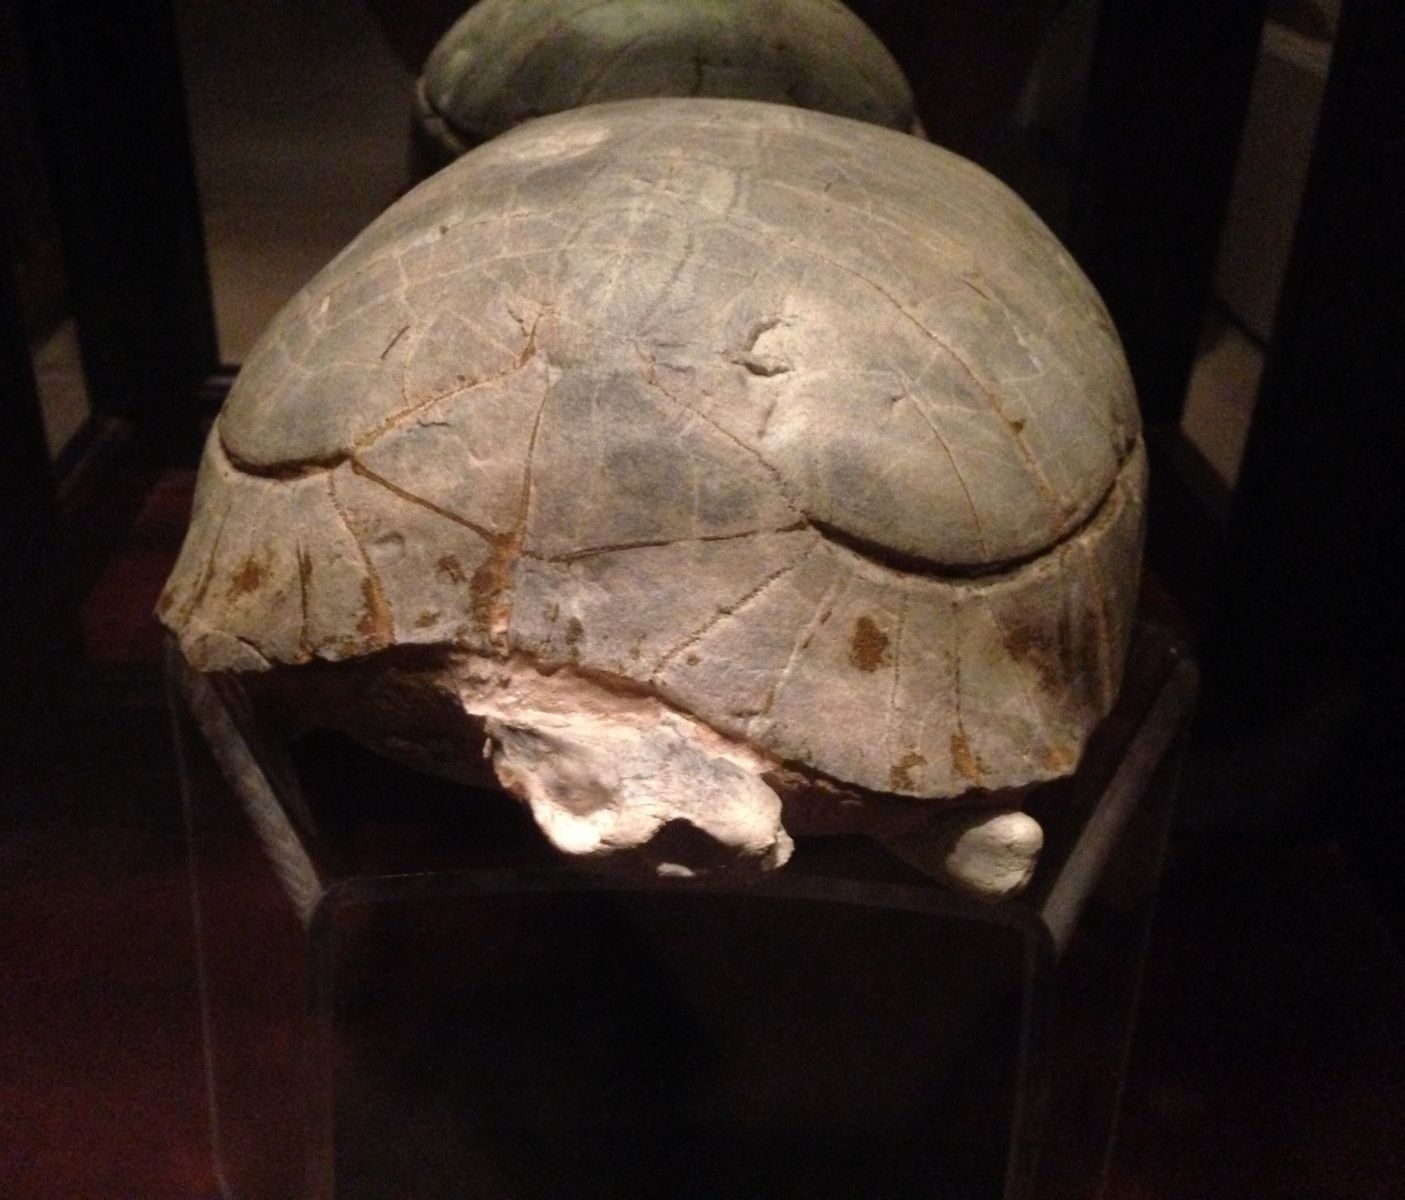 Stylemys nebrascensis Tortoise Fossil in Cabinet